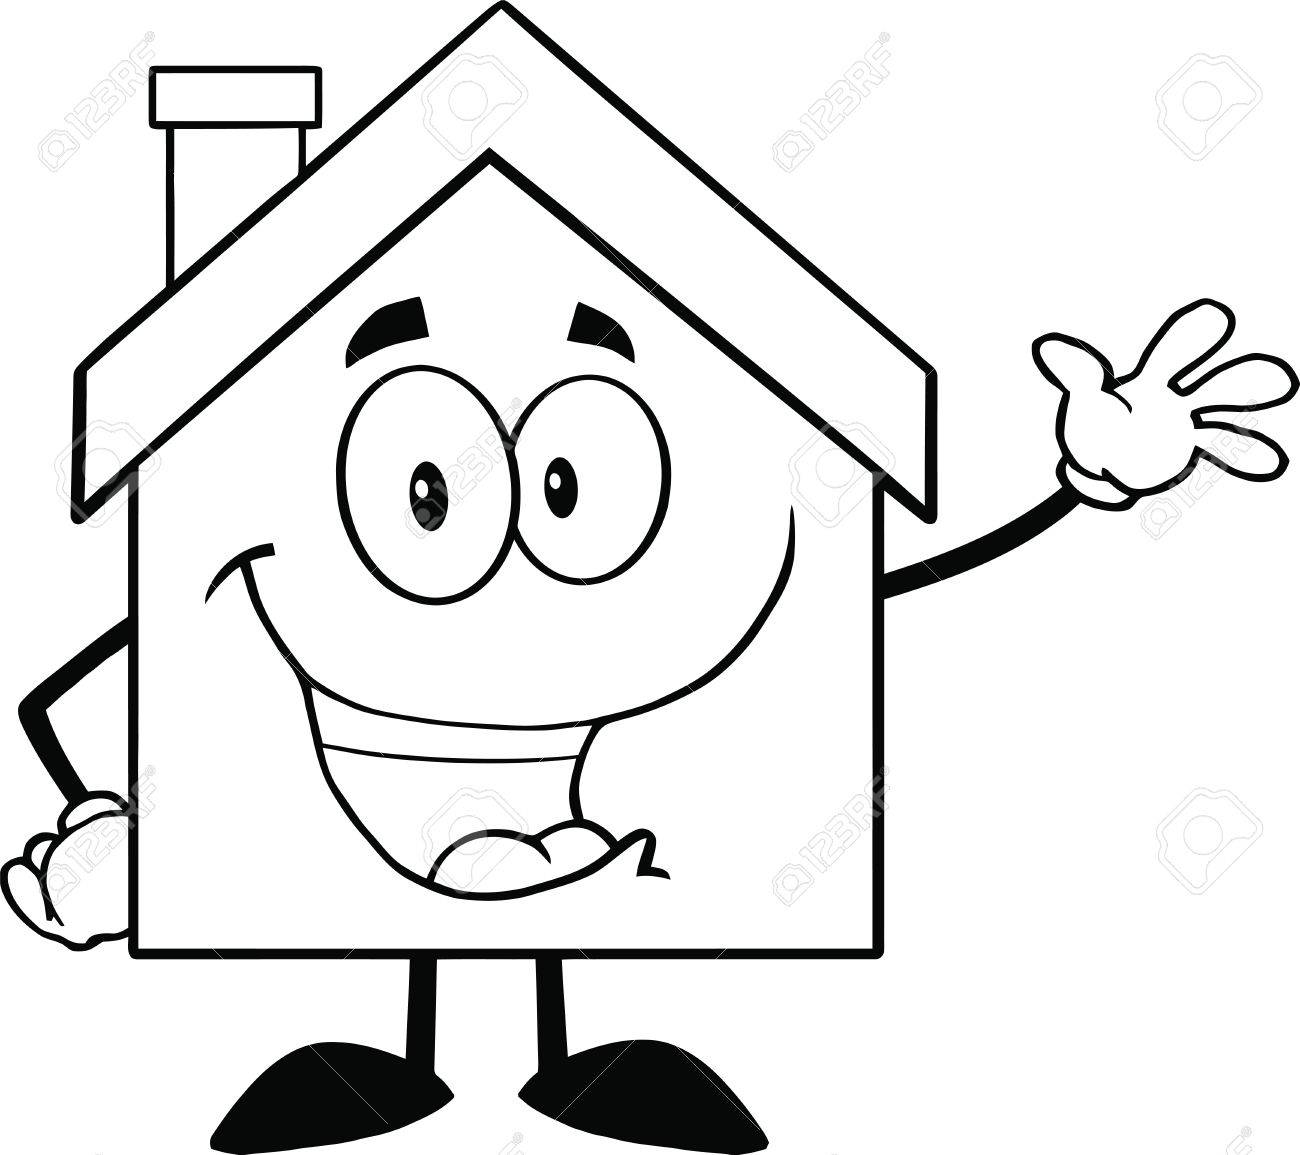 Back And White House Cartoon Mascot Character Waving For Greeting Stock Vector - 22617507